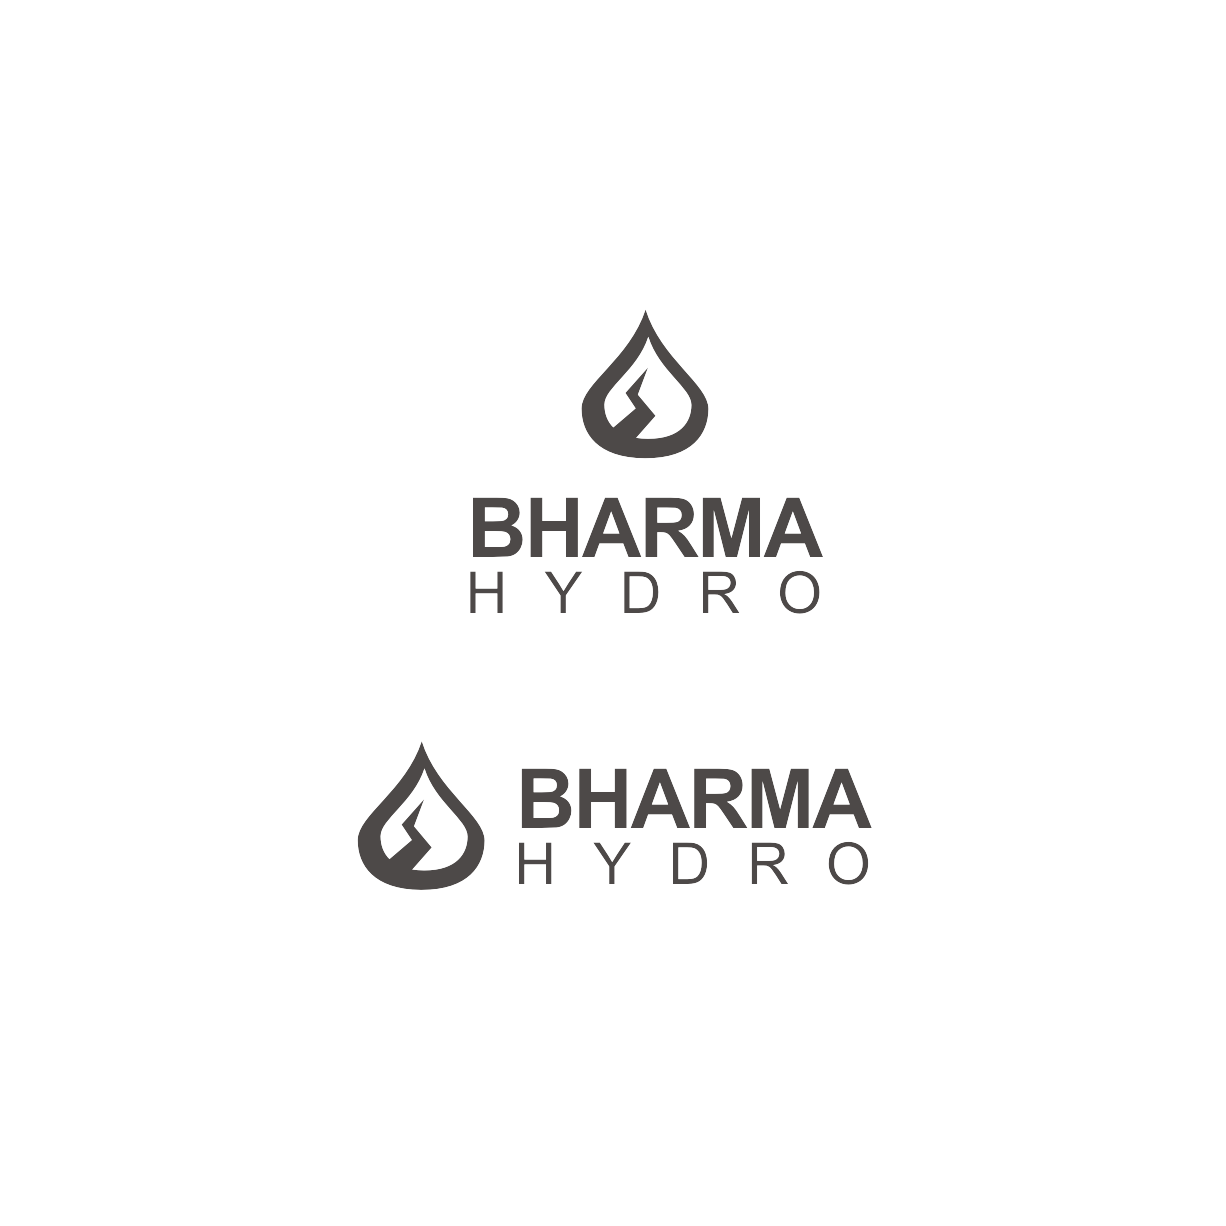 Logo Design by Think - Entry No. 7 in the Logo Design Contest Creative Logo Design for Bharma Hydro.